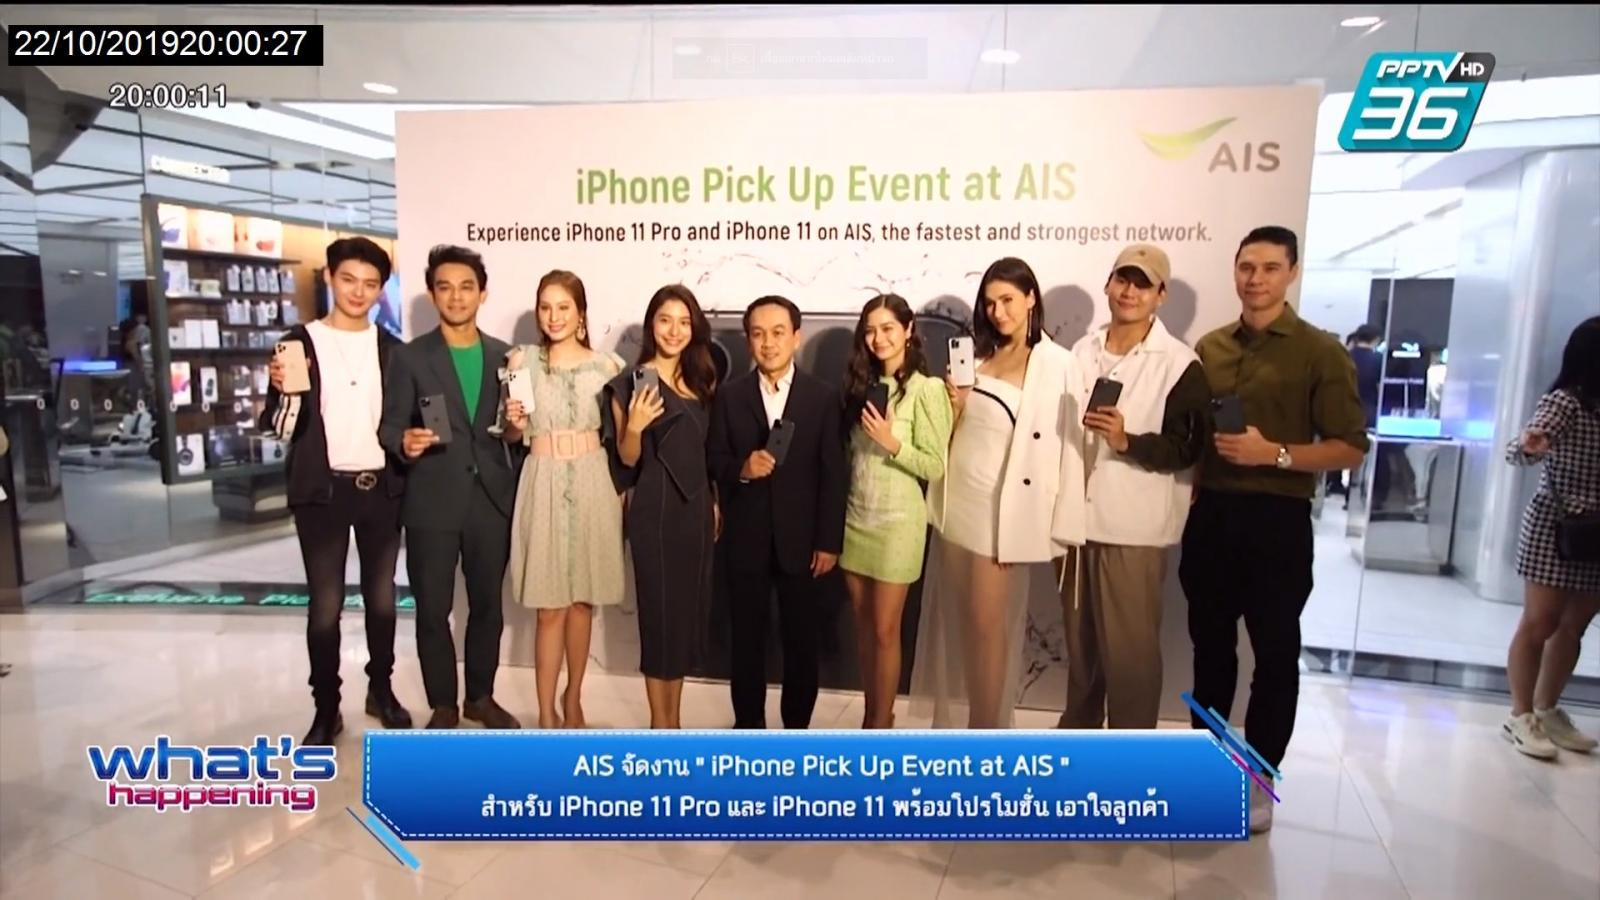 "AIS จัดงาน "" iPhone Pick up Event at AIS"" สำหรับ iPhone 11 Pro และ iPhone 11"